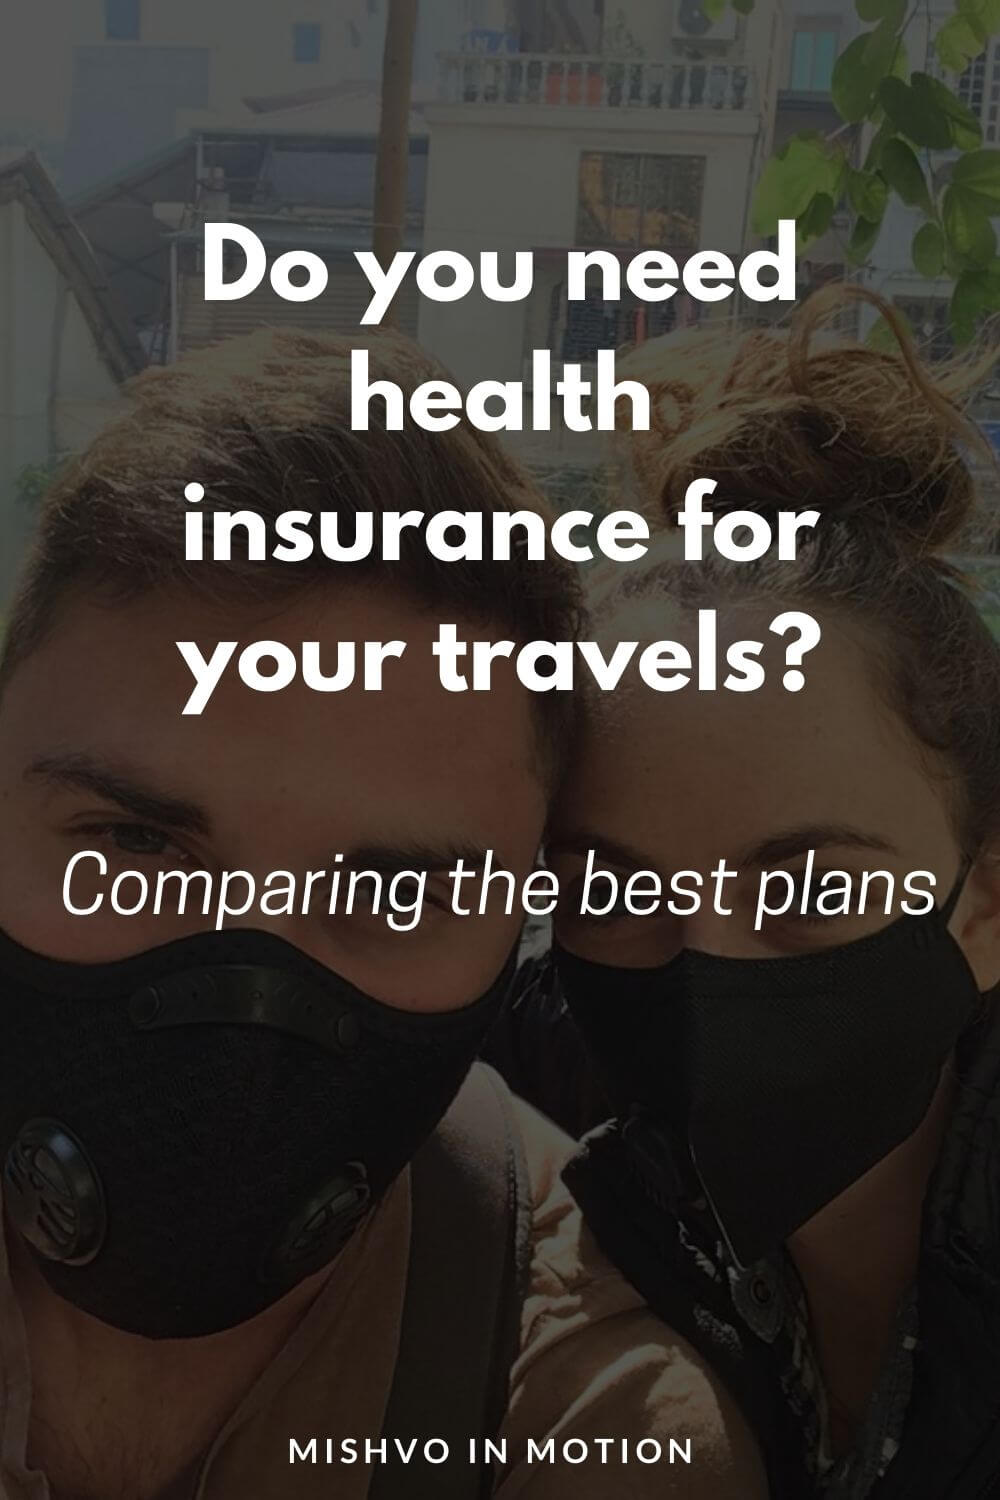 International Health Insurance for Digital Nomads: Comparing the Best Plans (2020)